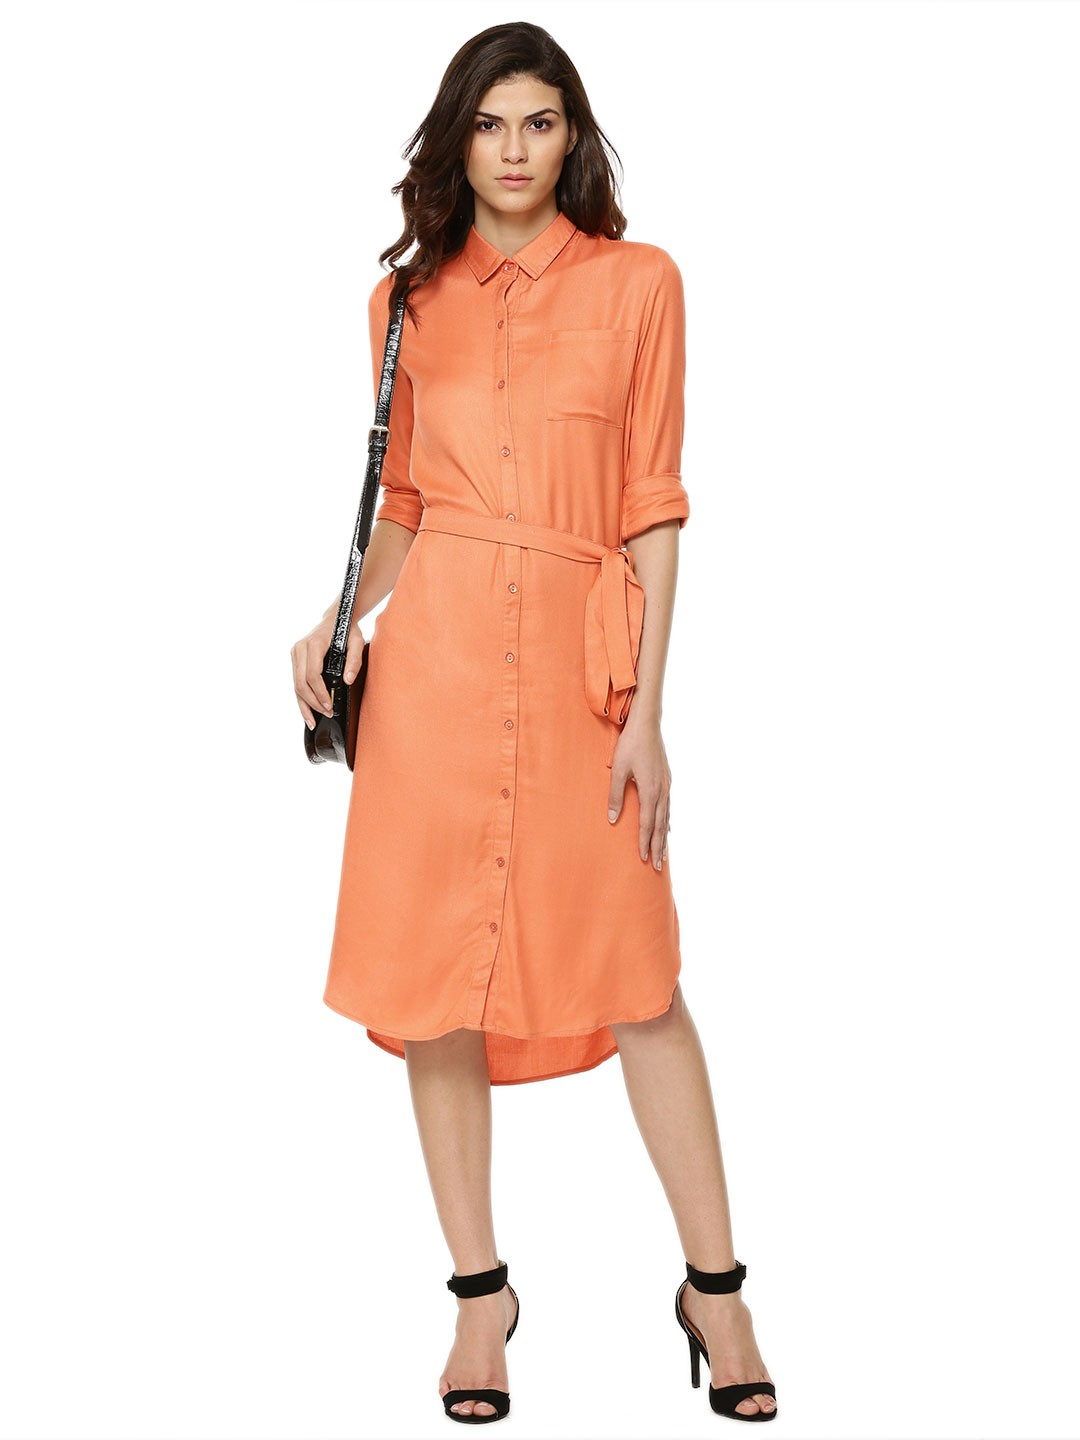 Dress styles at UNIQLO include stretch ponte mini dresses, long cotton maxi dresses, and more, and jumpsuits are available in v-neck, ribbed, long, and short styles. There's something for every situation and body type — dresses and jumpsuits from UNIQLO are ideal for both work and weekend looks.